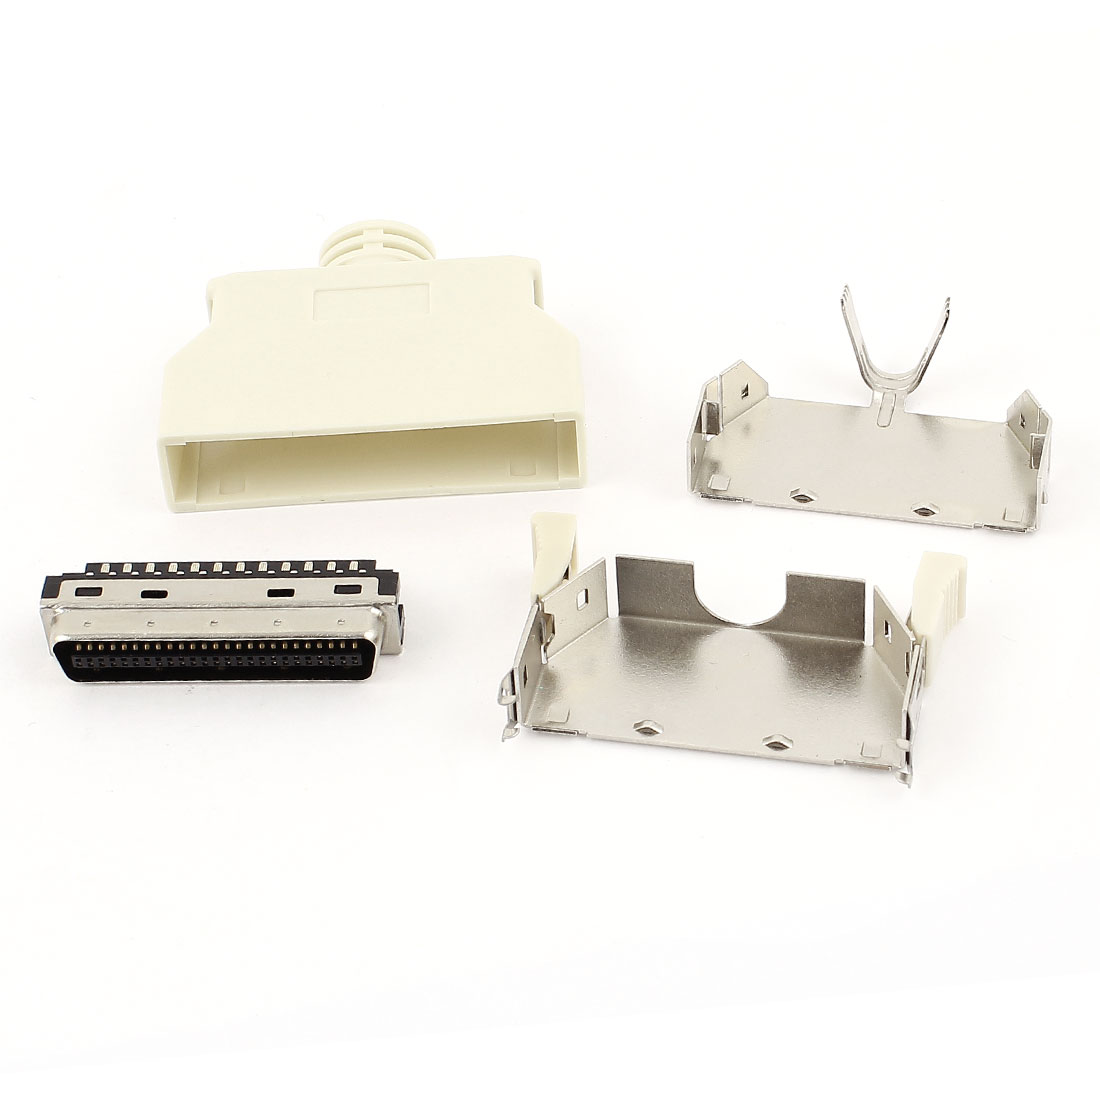 SCSI Connector CN Type 50 Pin Male Plastic Shell PC Computer Adapter